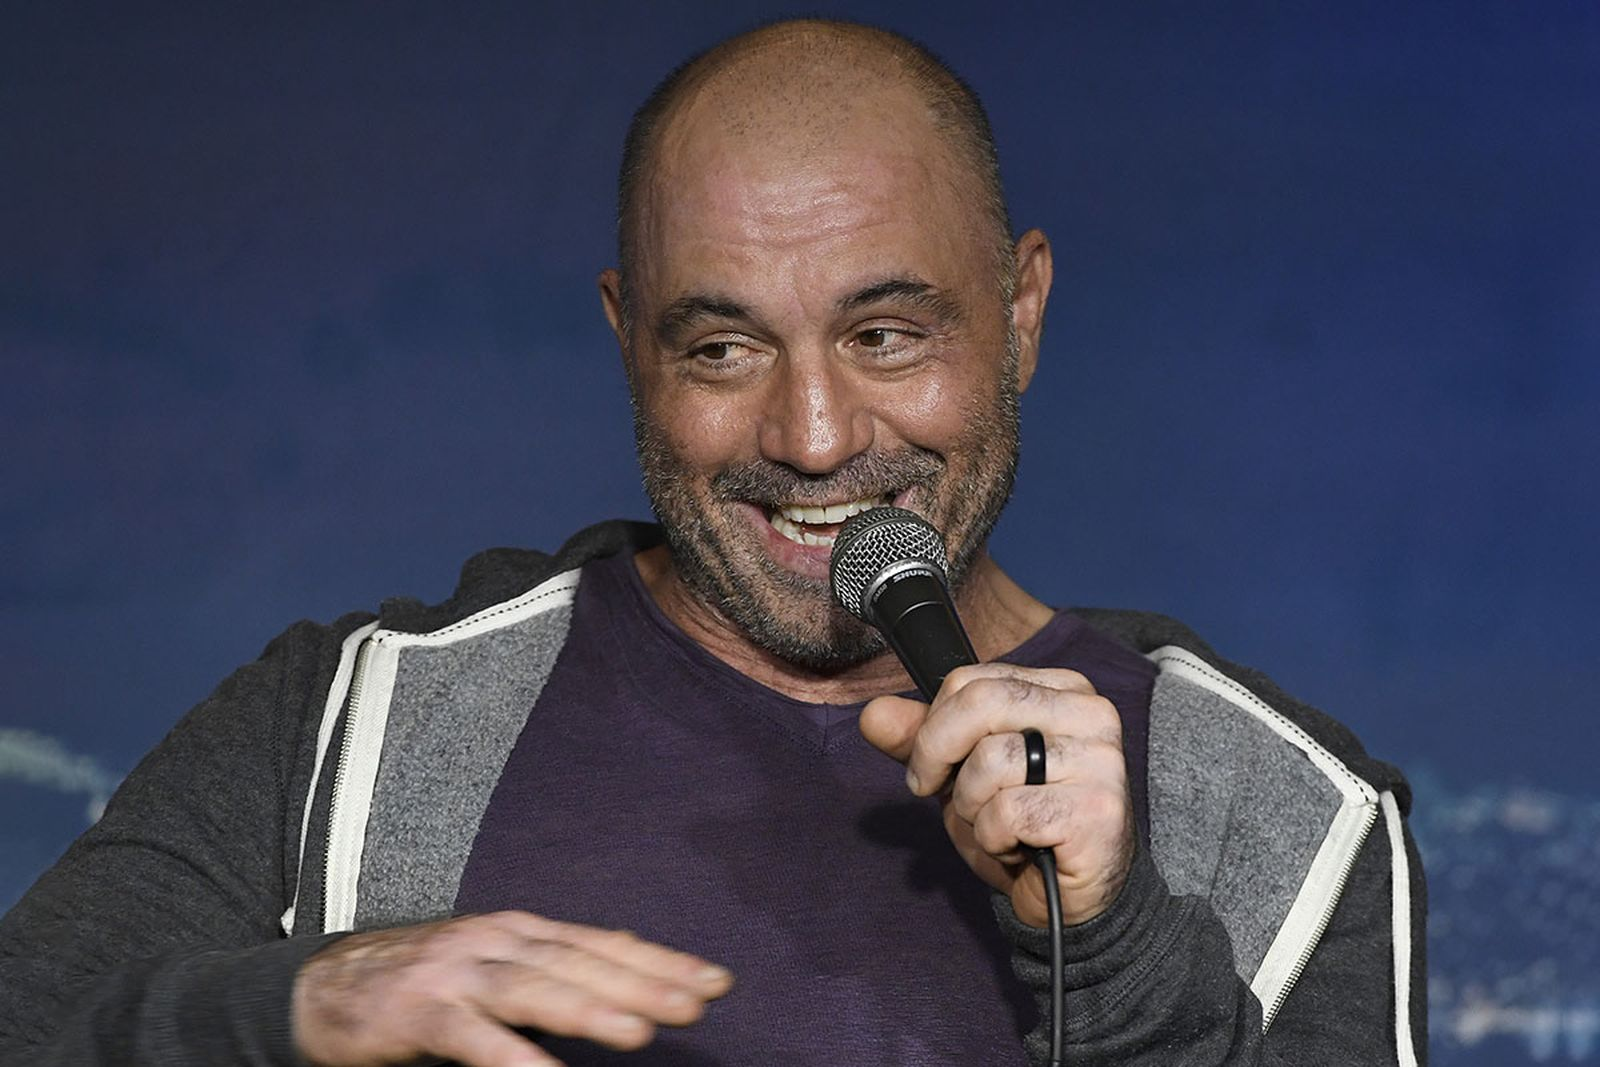 Comedian Joe Rogan performs during his appearance at The Ice House Comedy Clu